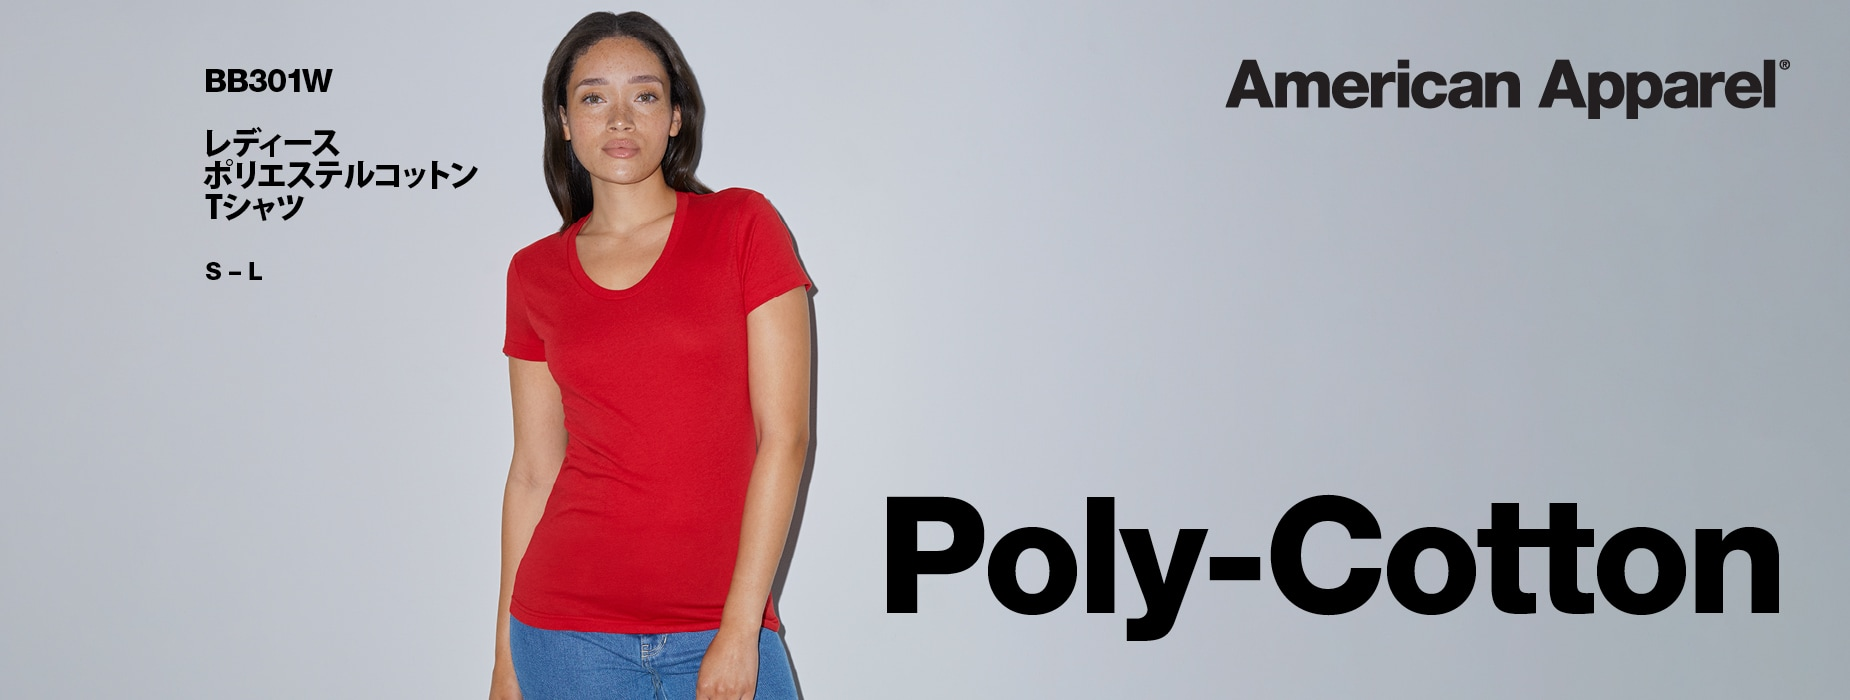 View our American Apparel® BB301W, レディースポリコットンTシャツ   USA